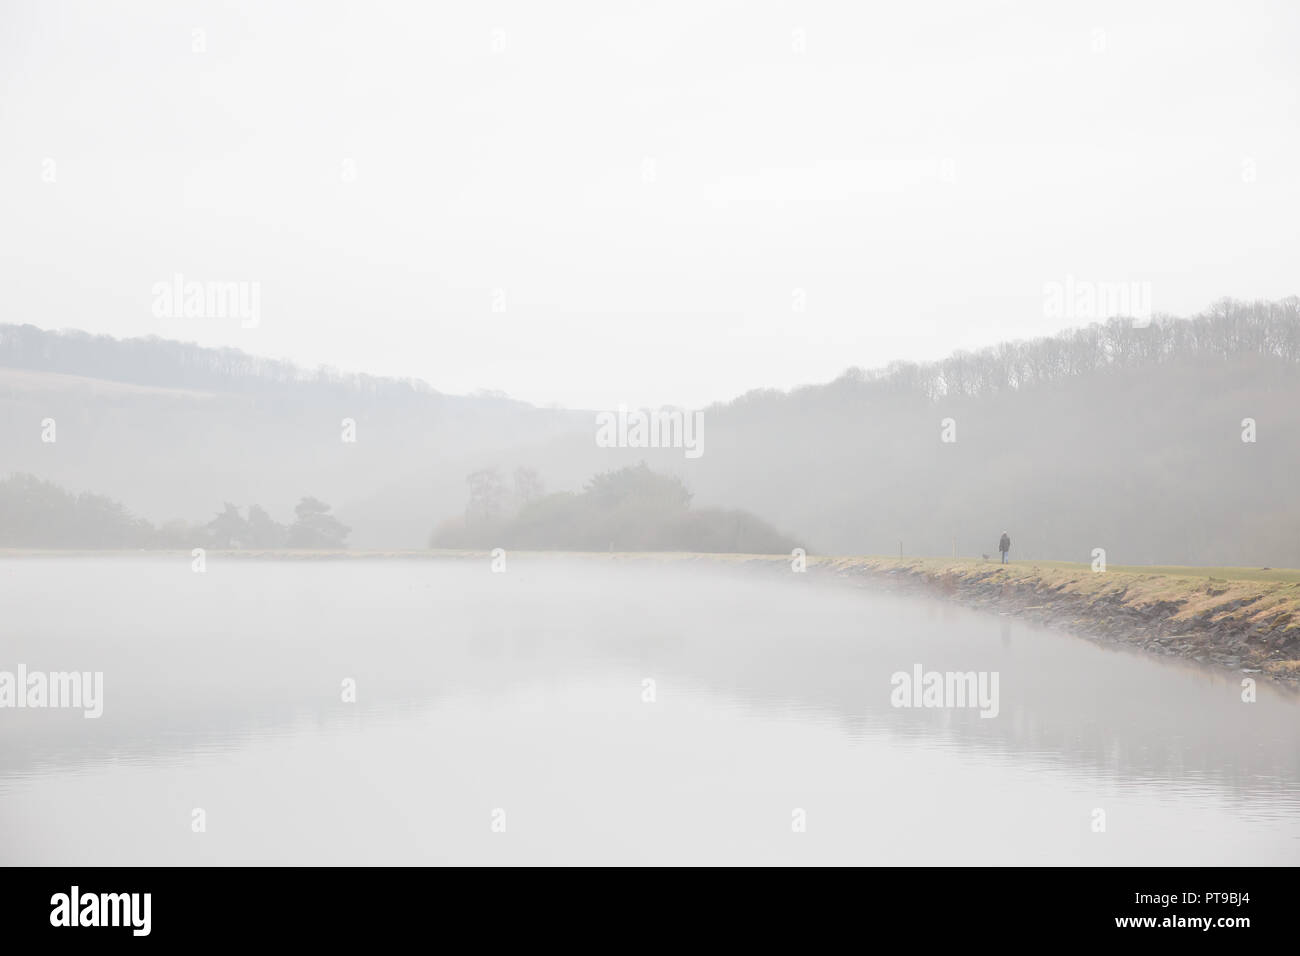 Landscape capture of foggy morning by UK reservoir. - Stock Image